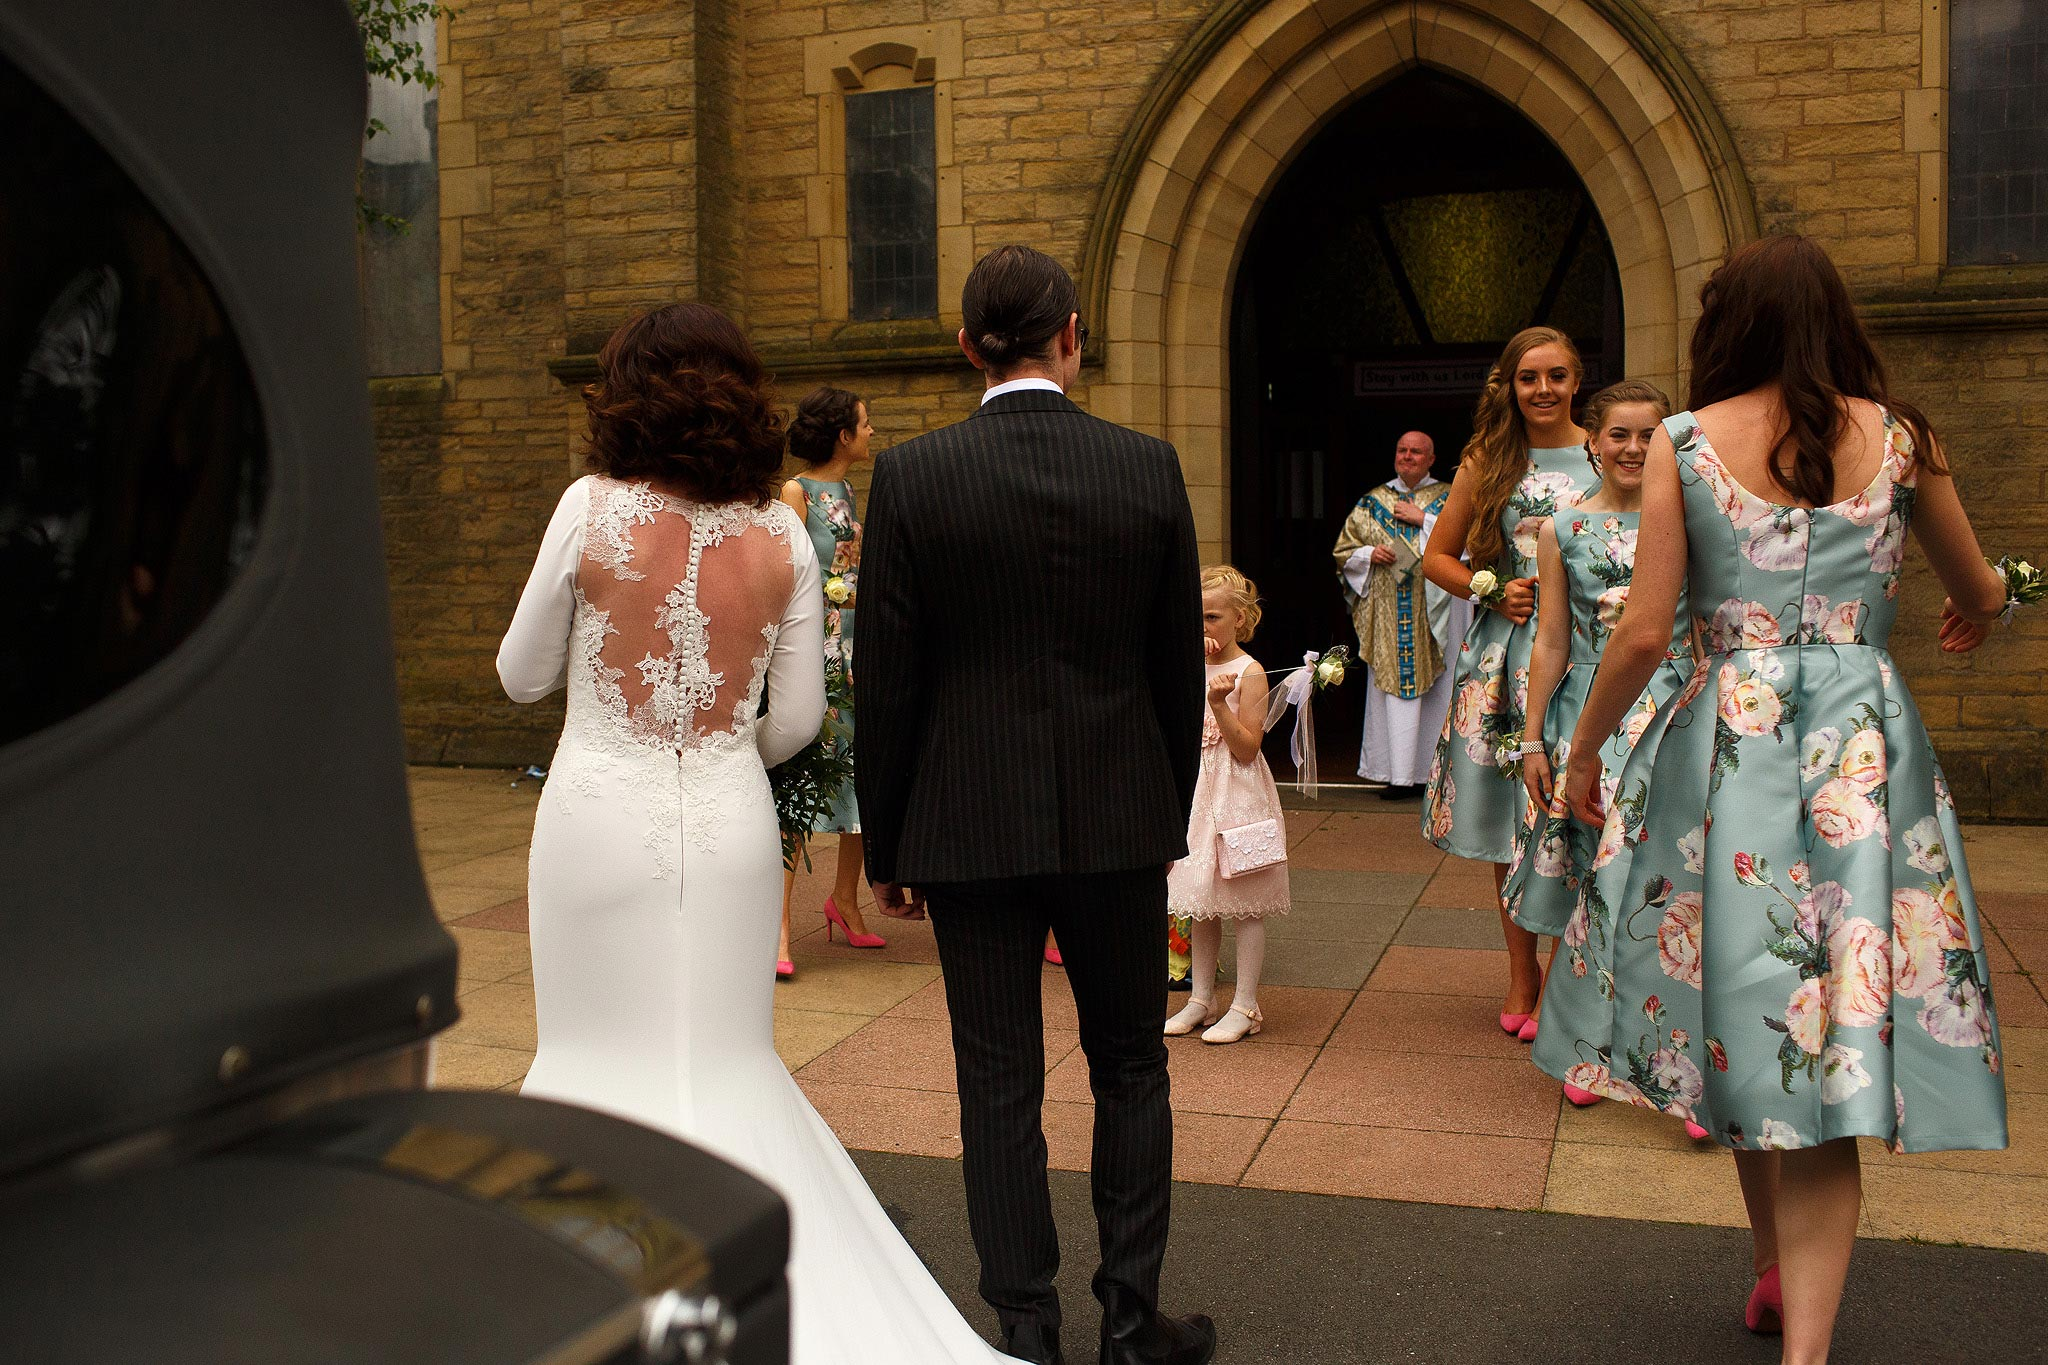 bride being escorted into church as the wedding party watch